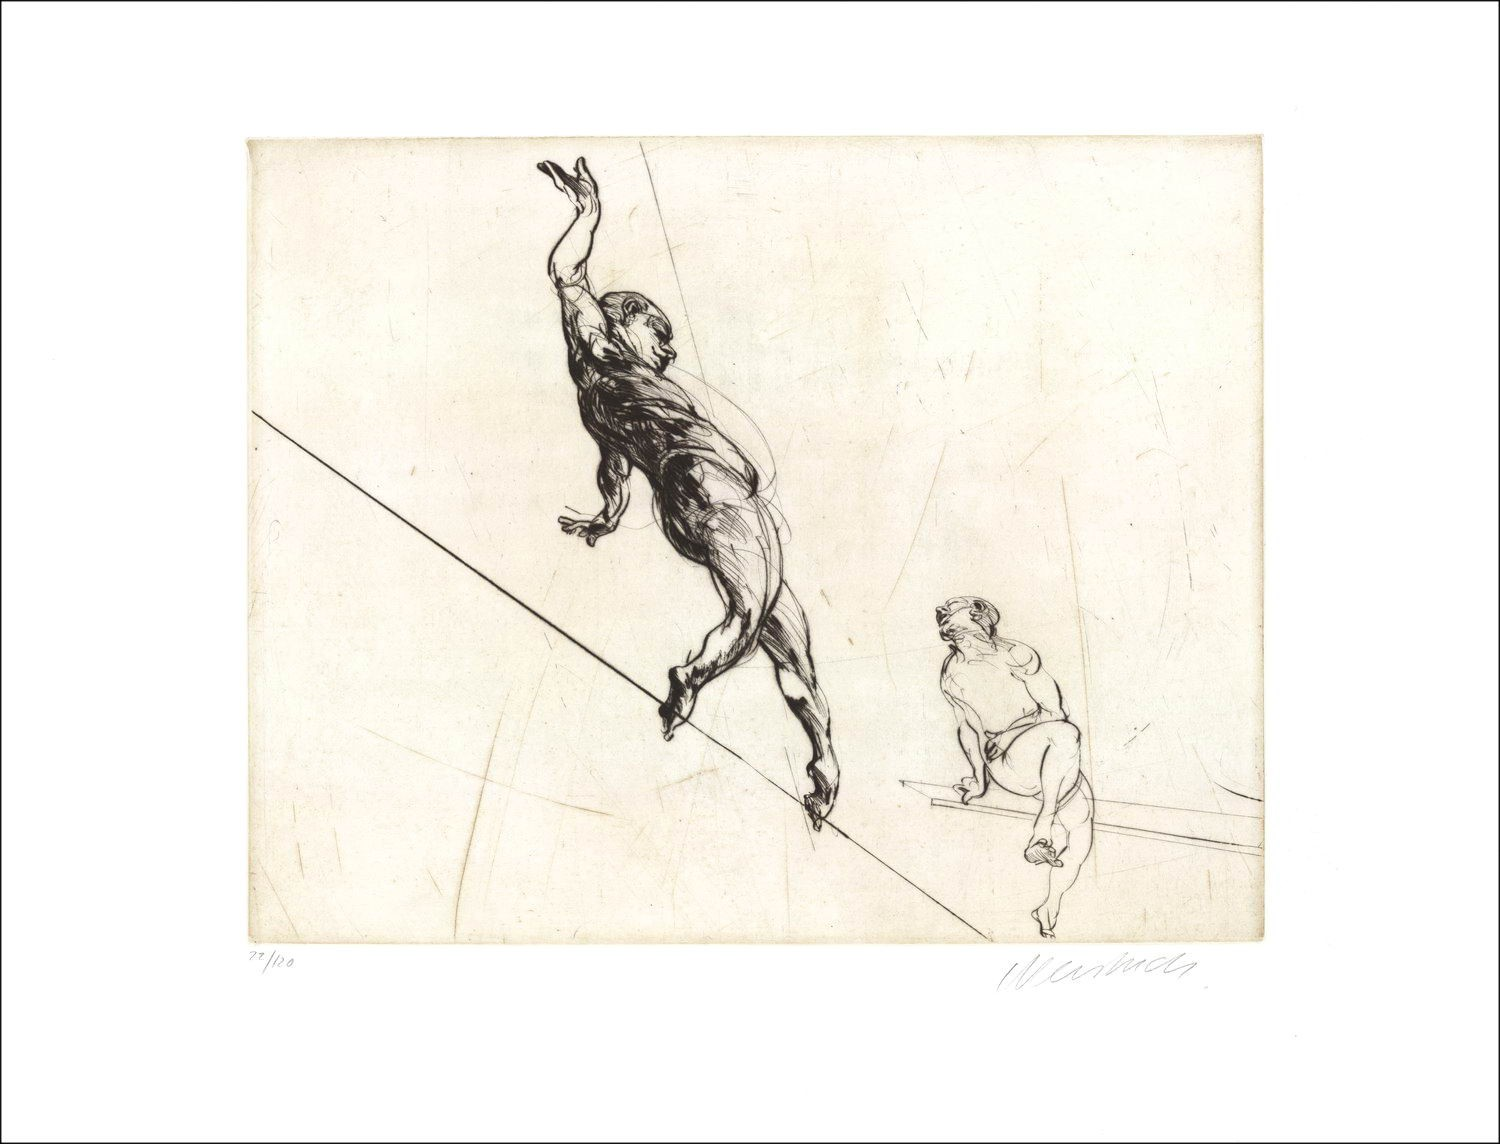 """Weisbuch, engraving """"the tightrope walker"""" 1990"""